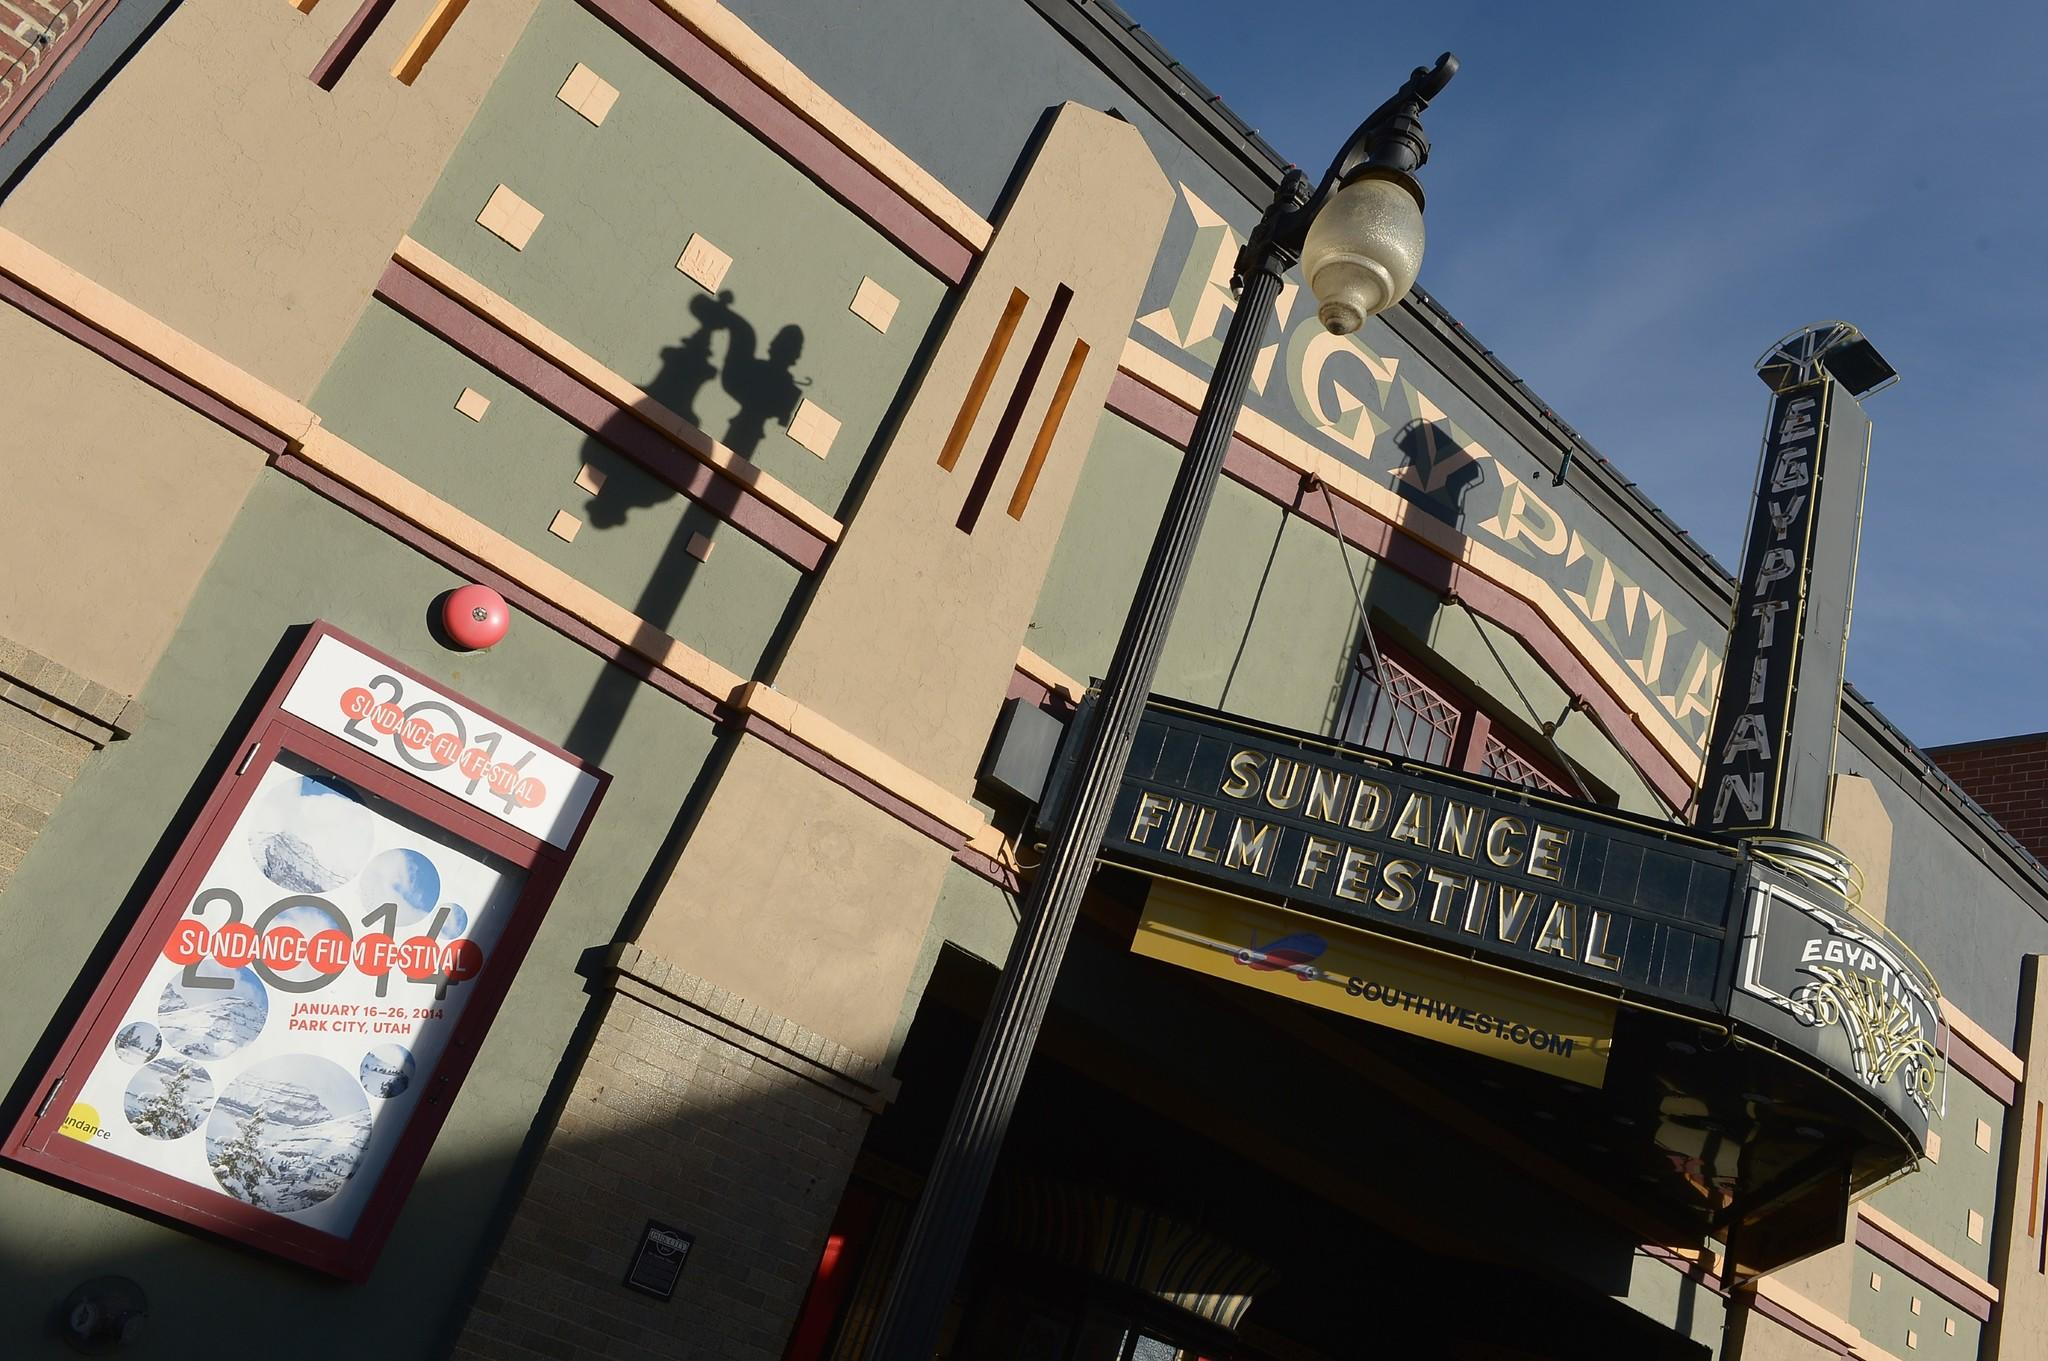 The Egyptian Theater is one of several venues hosting screenings during the Sundance Film Festival in Park City, Utah.